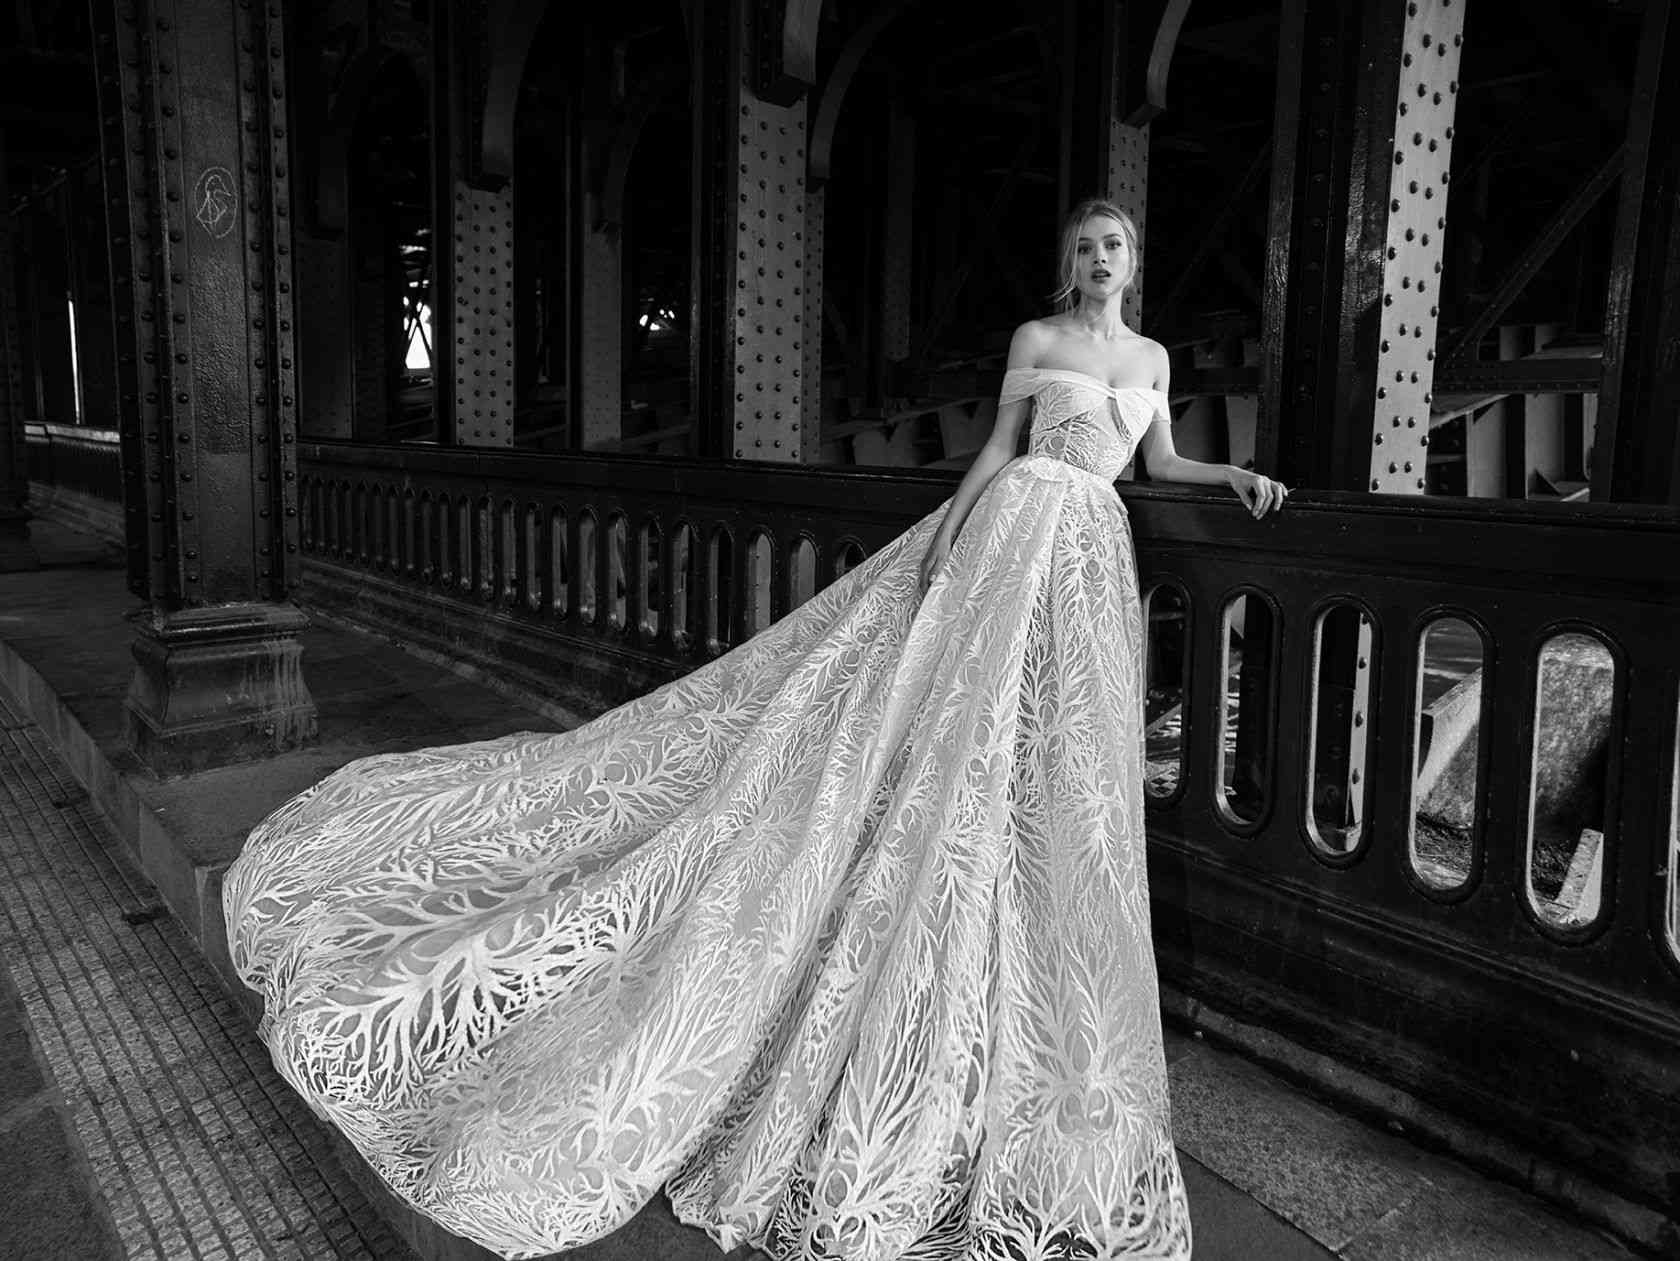 Model in off-the-shoulder ball gown with long train and embroidery on skirt